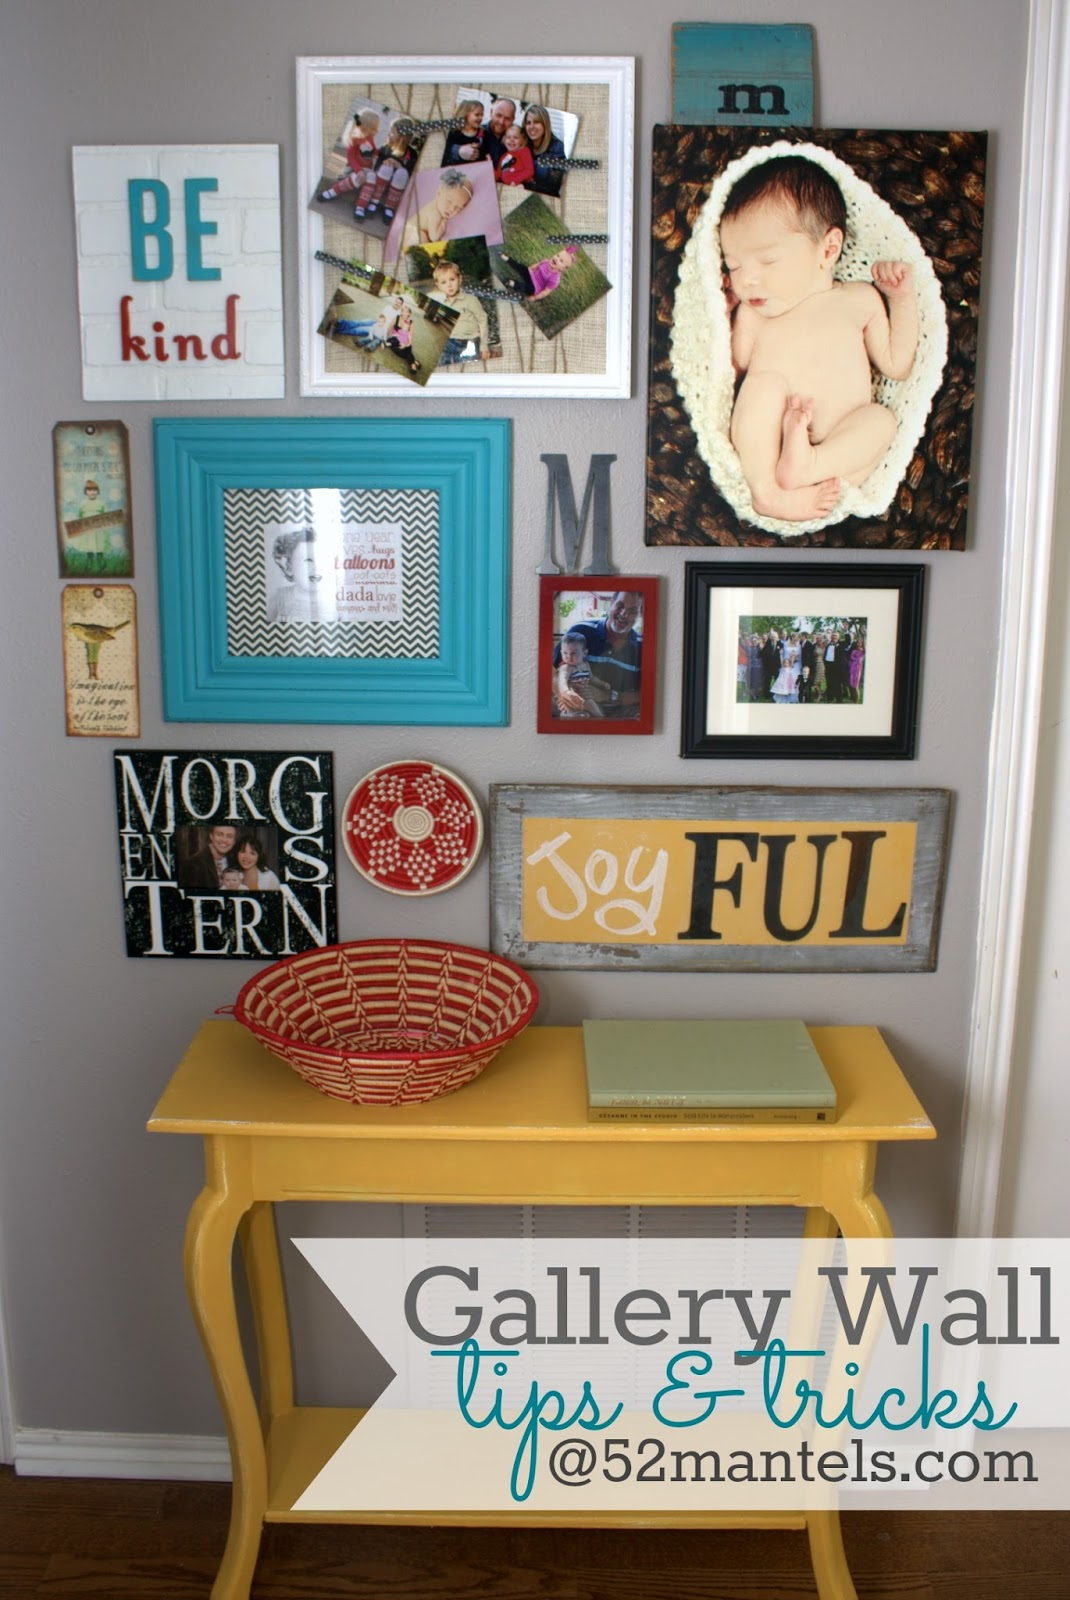 Gallery For Cute Guys With Brown Hair And Green Eyes: 52 Mantels: Gallery Wall Details {from My Hallway Makeover!}